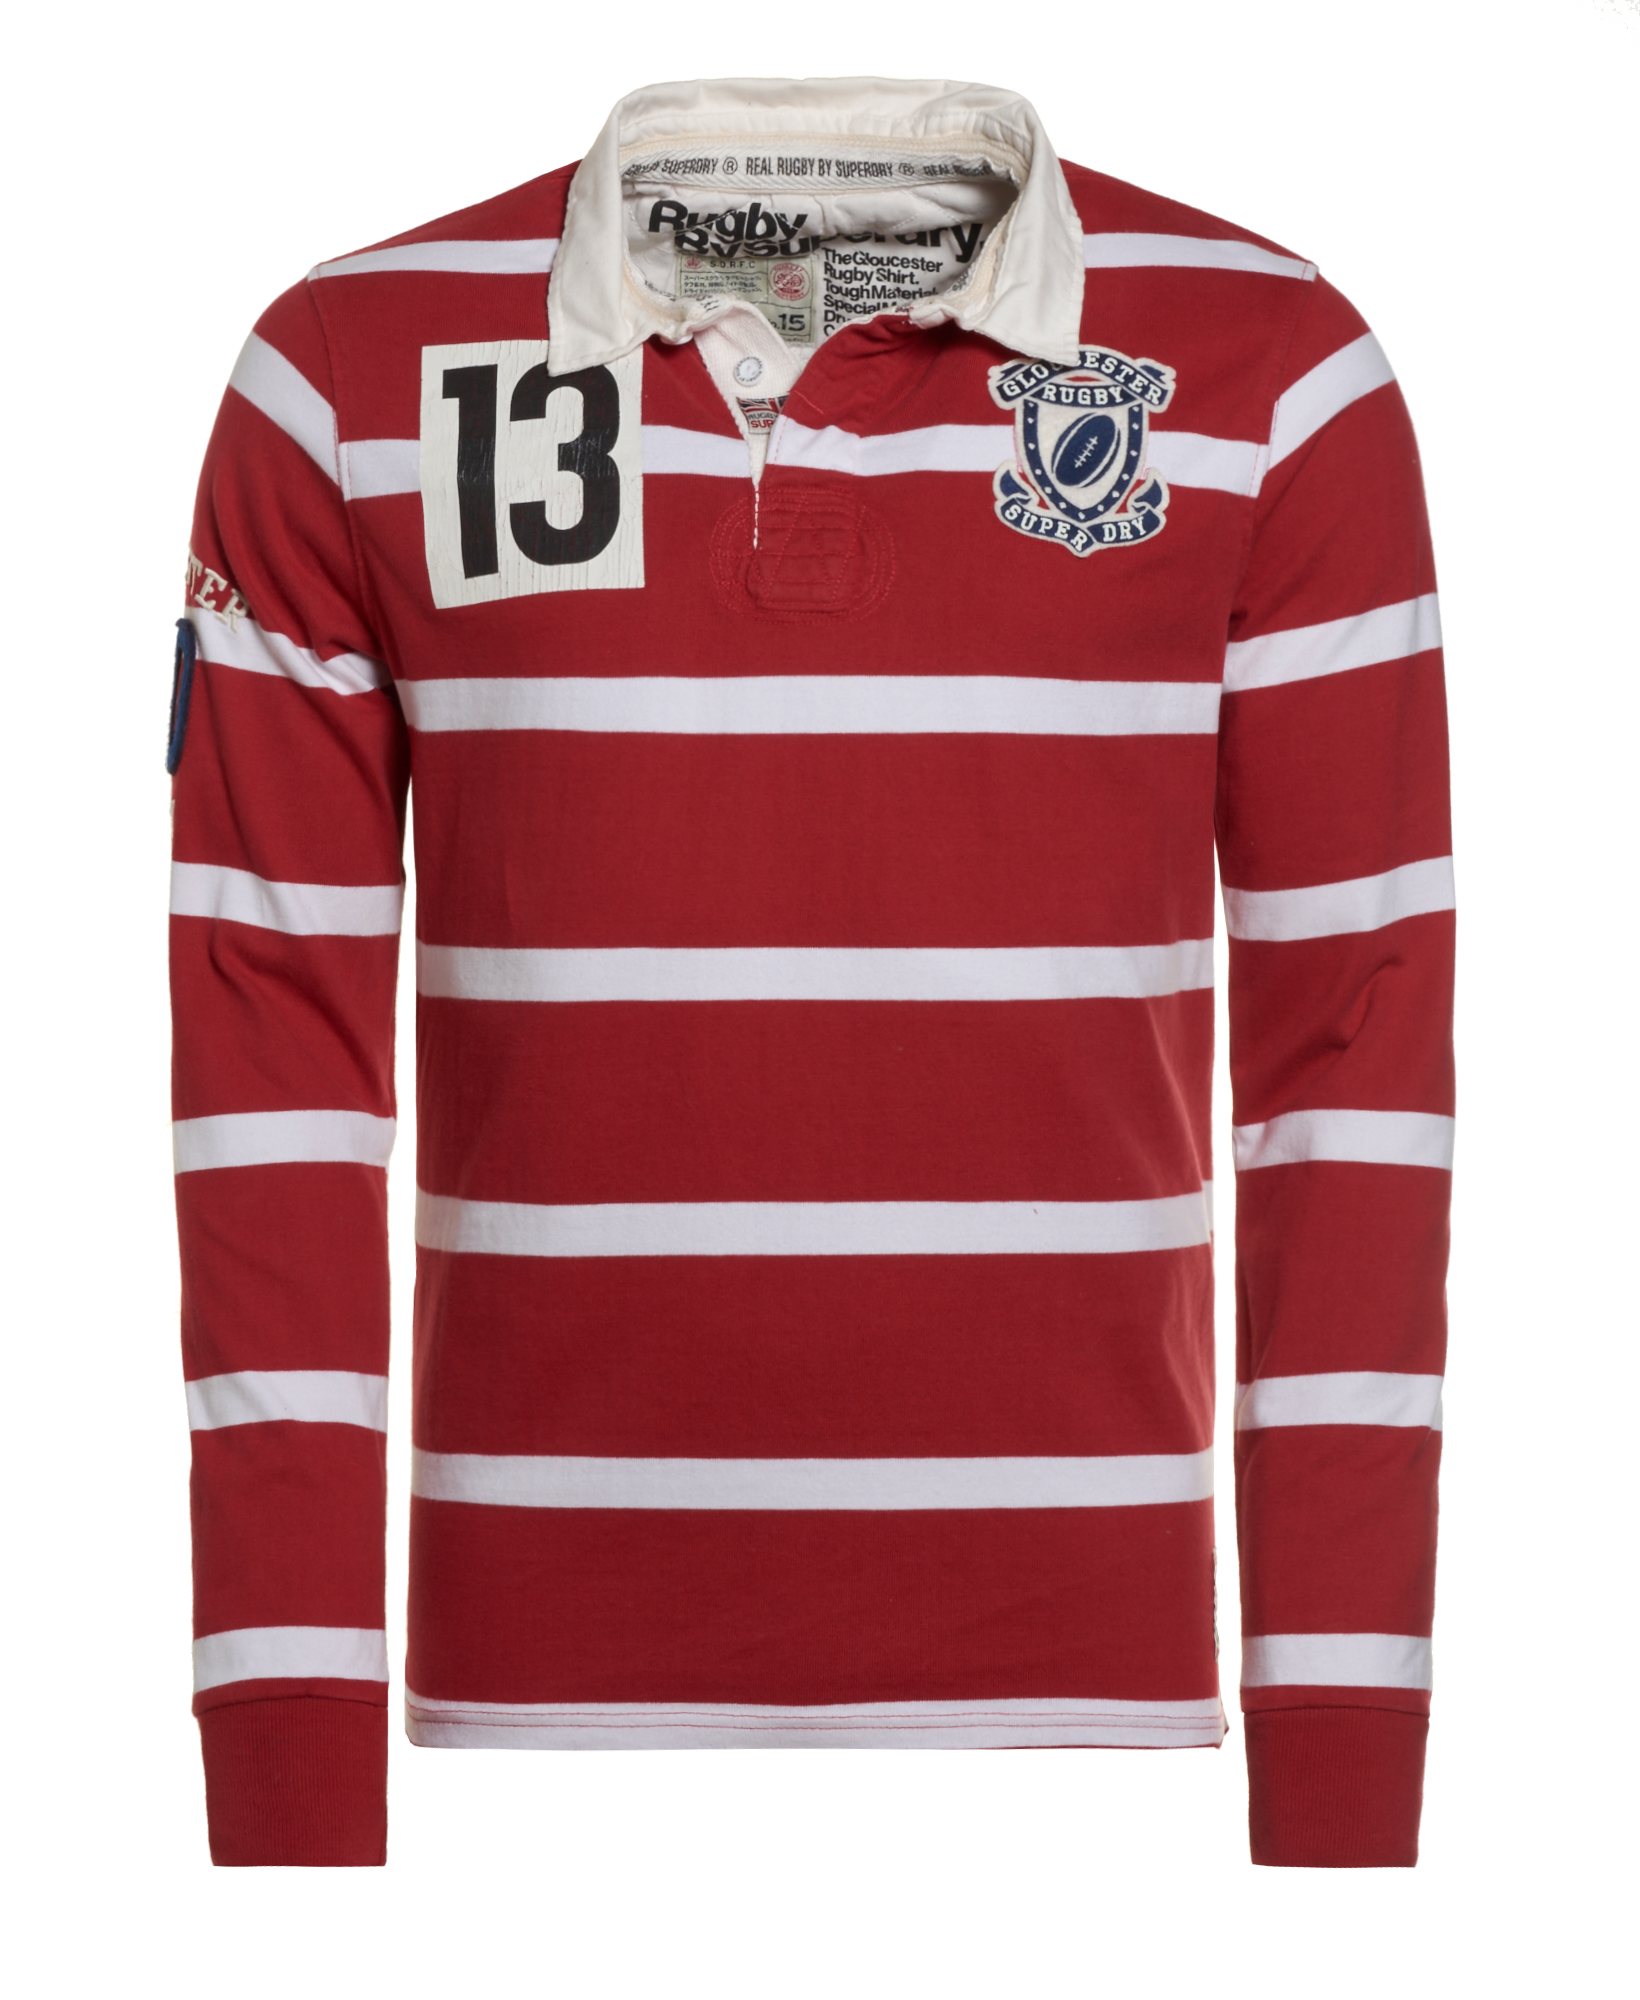 New Mens Superdry Factory Second Gloucester Rugby Shirt ...